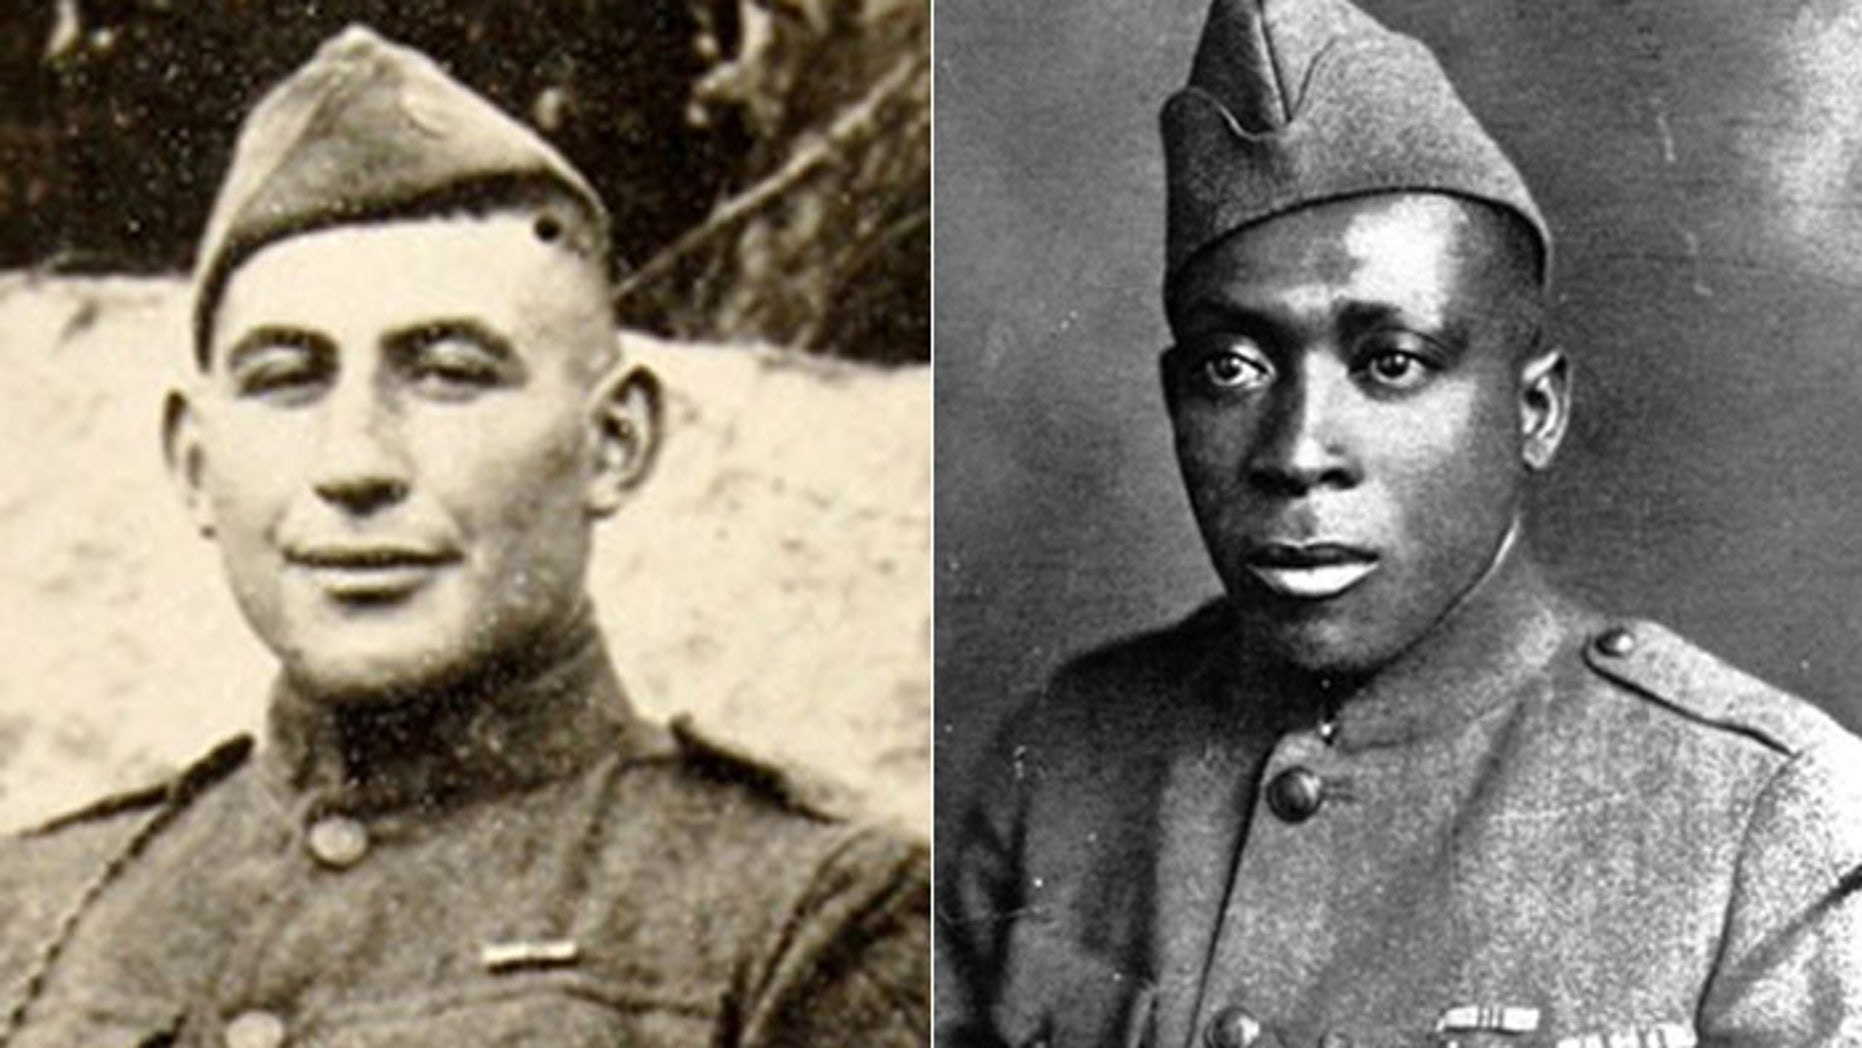 William Shemin, (l.) and Henry Johnson, (r.), are set to be posthumously awarded the Medal of Honor. (Shemin photo courtesy of family; Johnson photo courtesy U.S. Army)